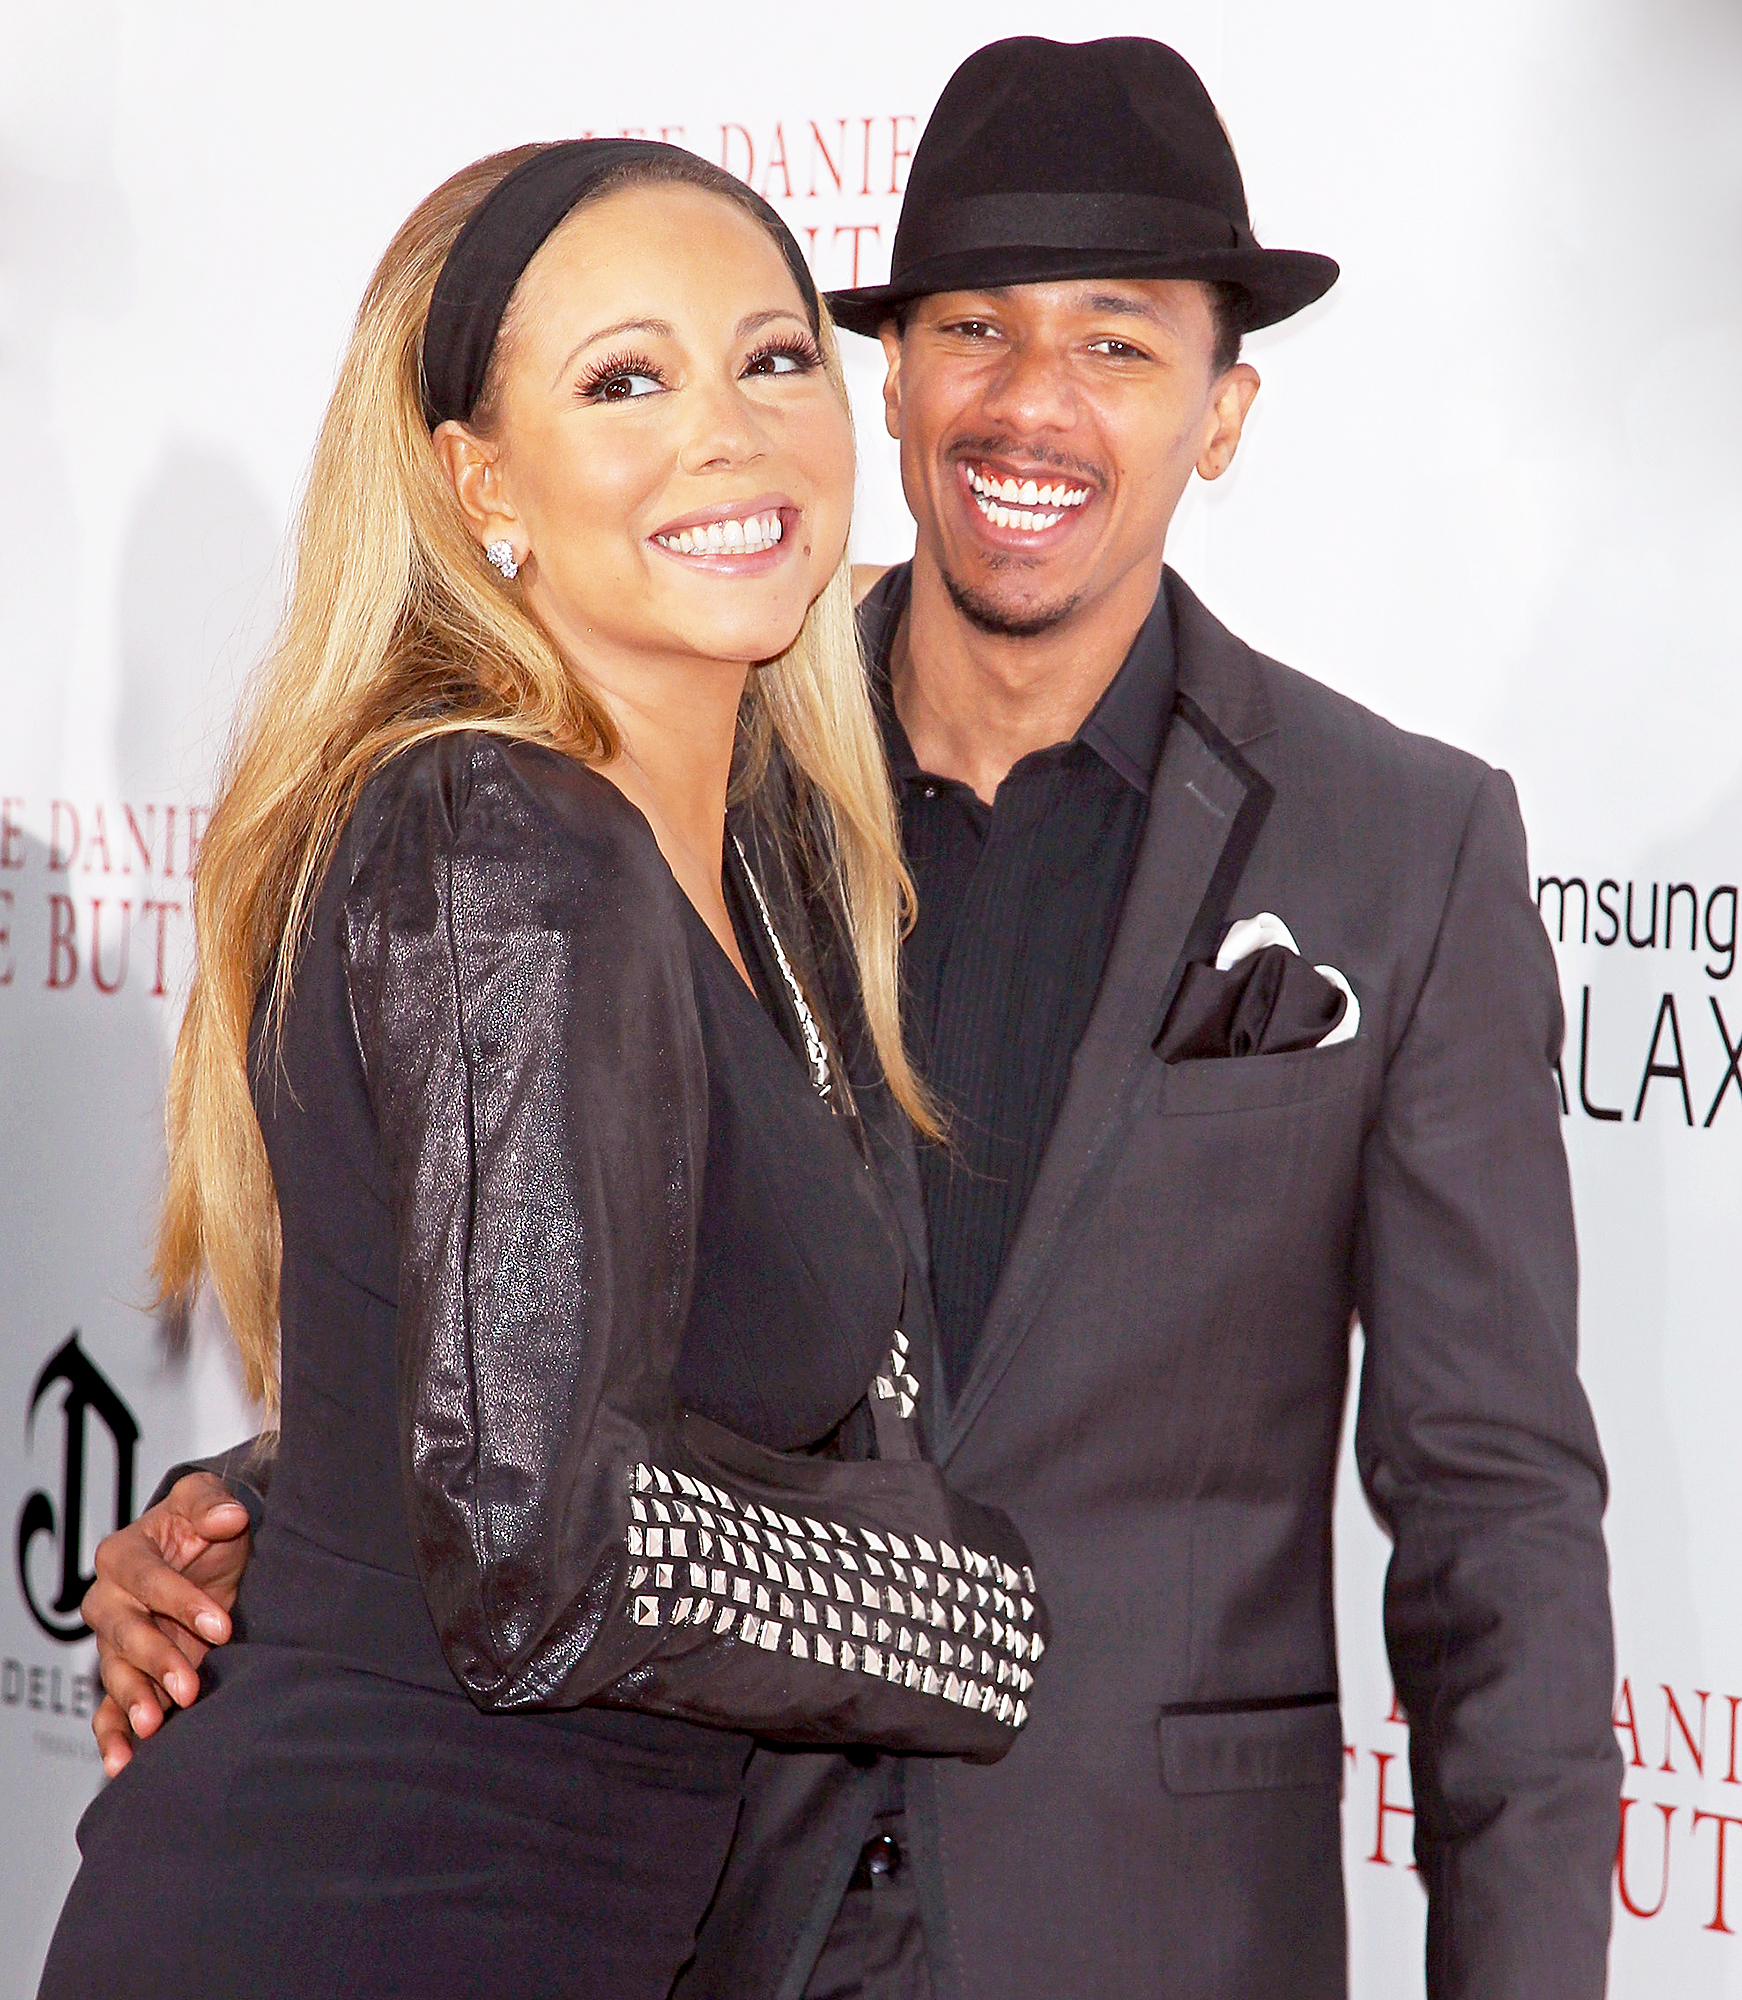 Who is nick cannon dating today compared